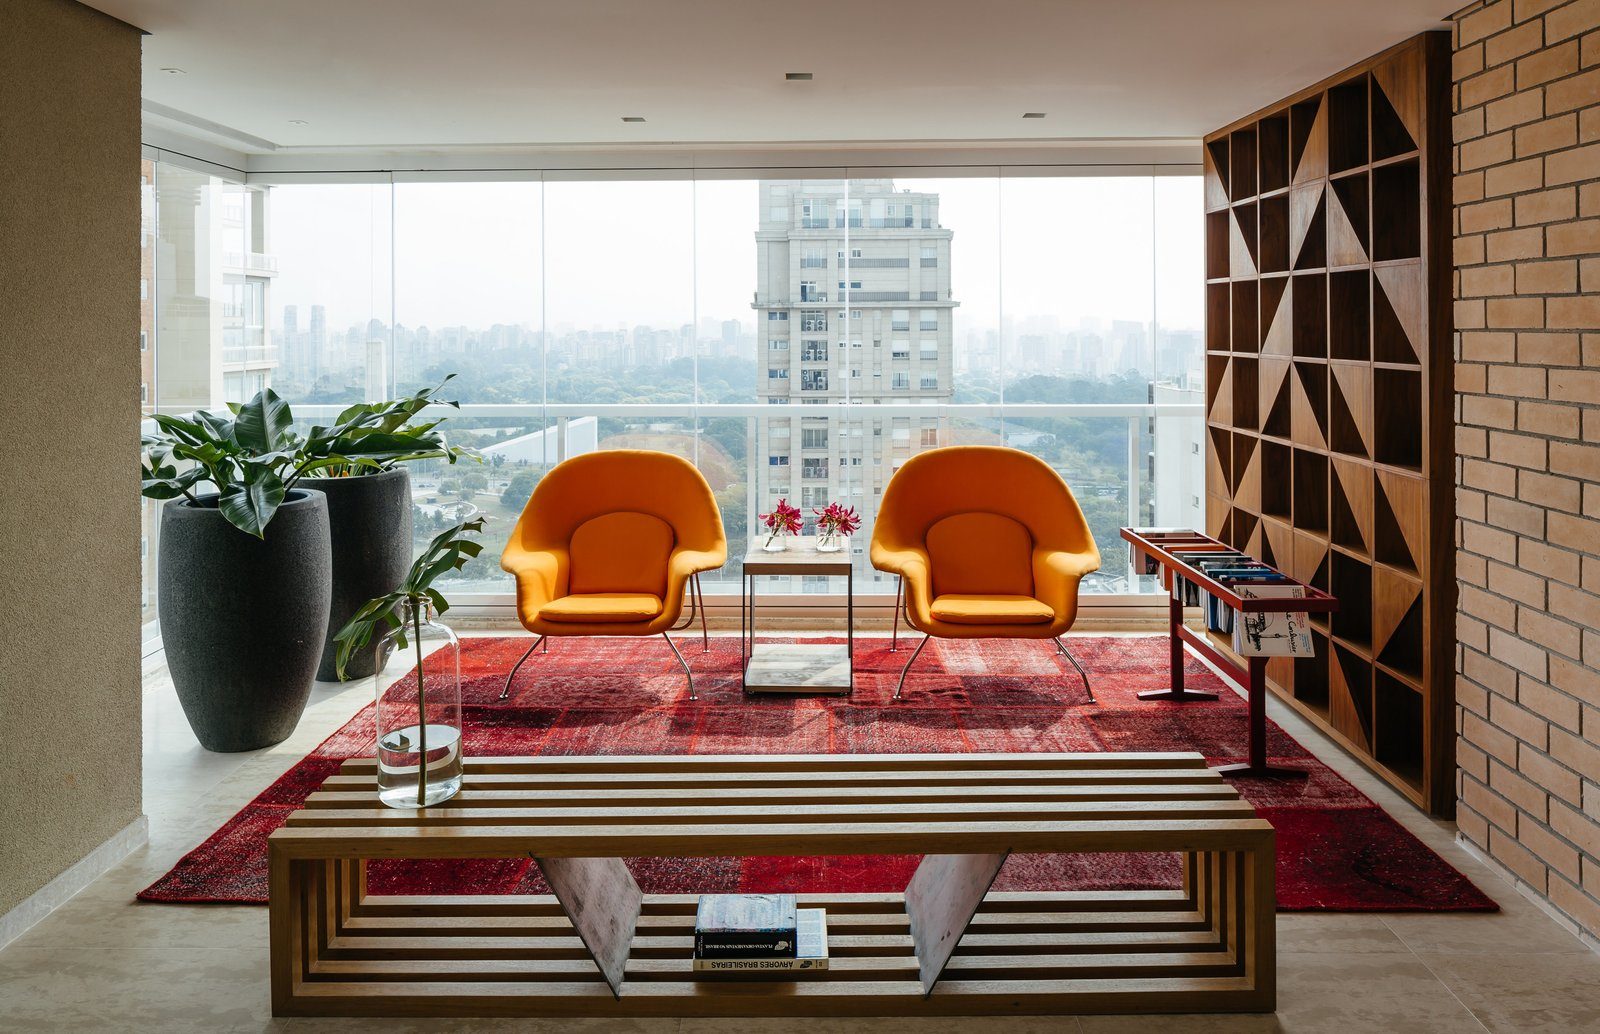 Two Womb chairs by Eero Saarinen for Knoll and a Ring bench by Castro structure a reading area in the enclosed terrace.  Photo 2 of 9 in Overlooking a Niemeyer Masterpiece, This Flat is Filled with Brazilian Modern Gems